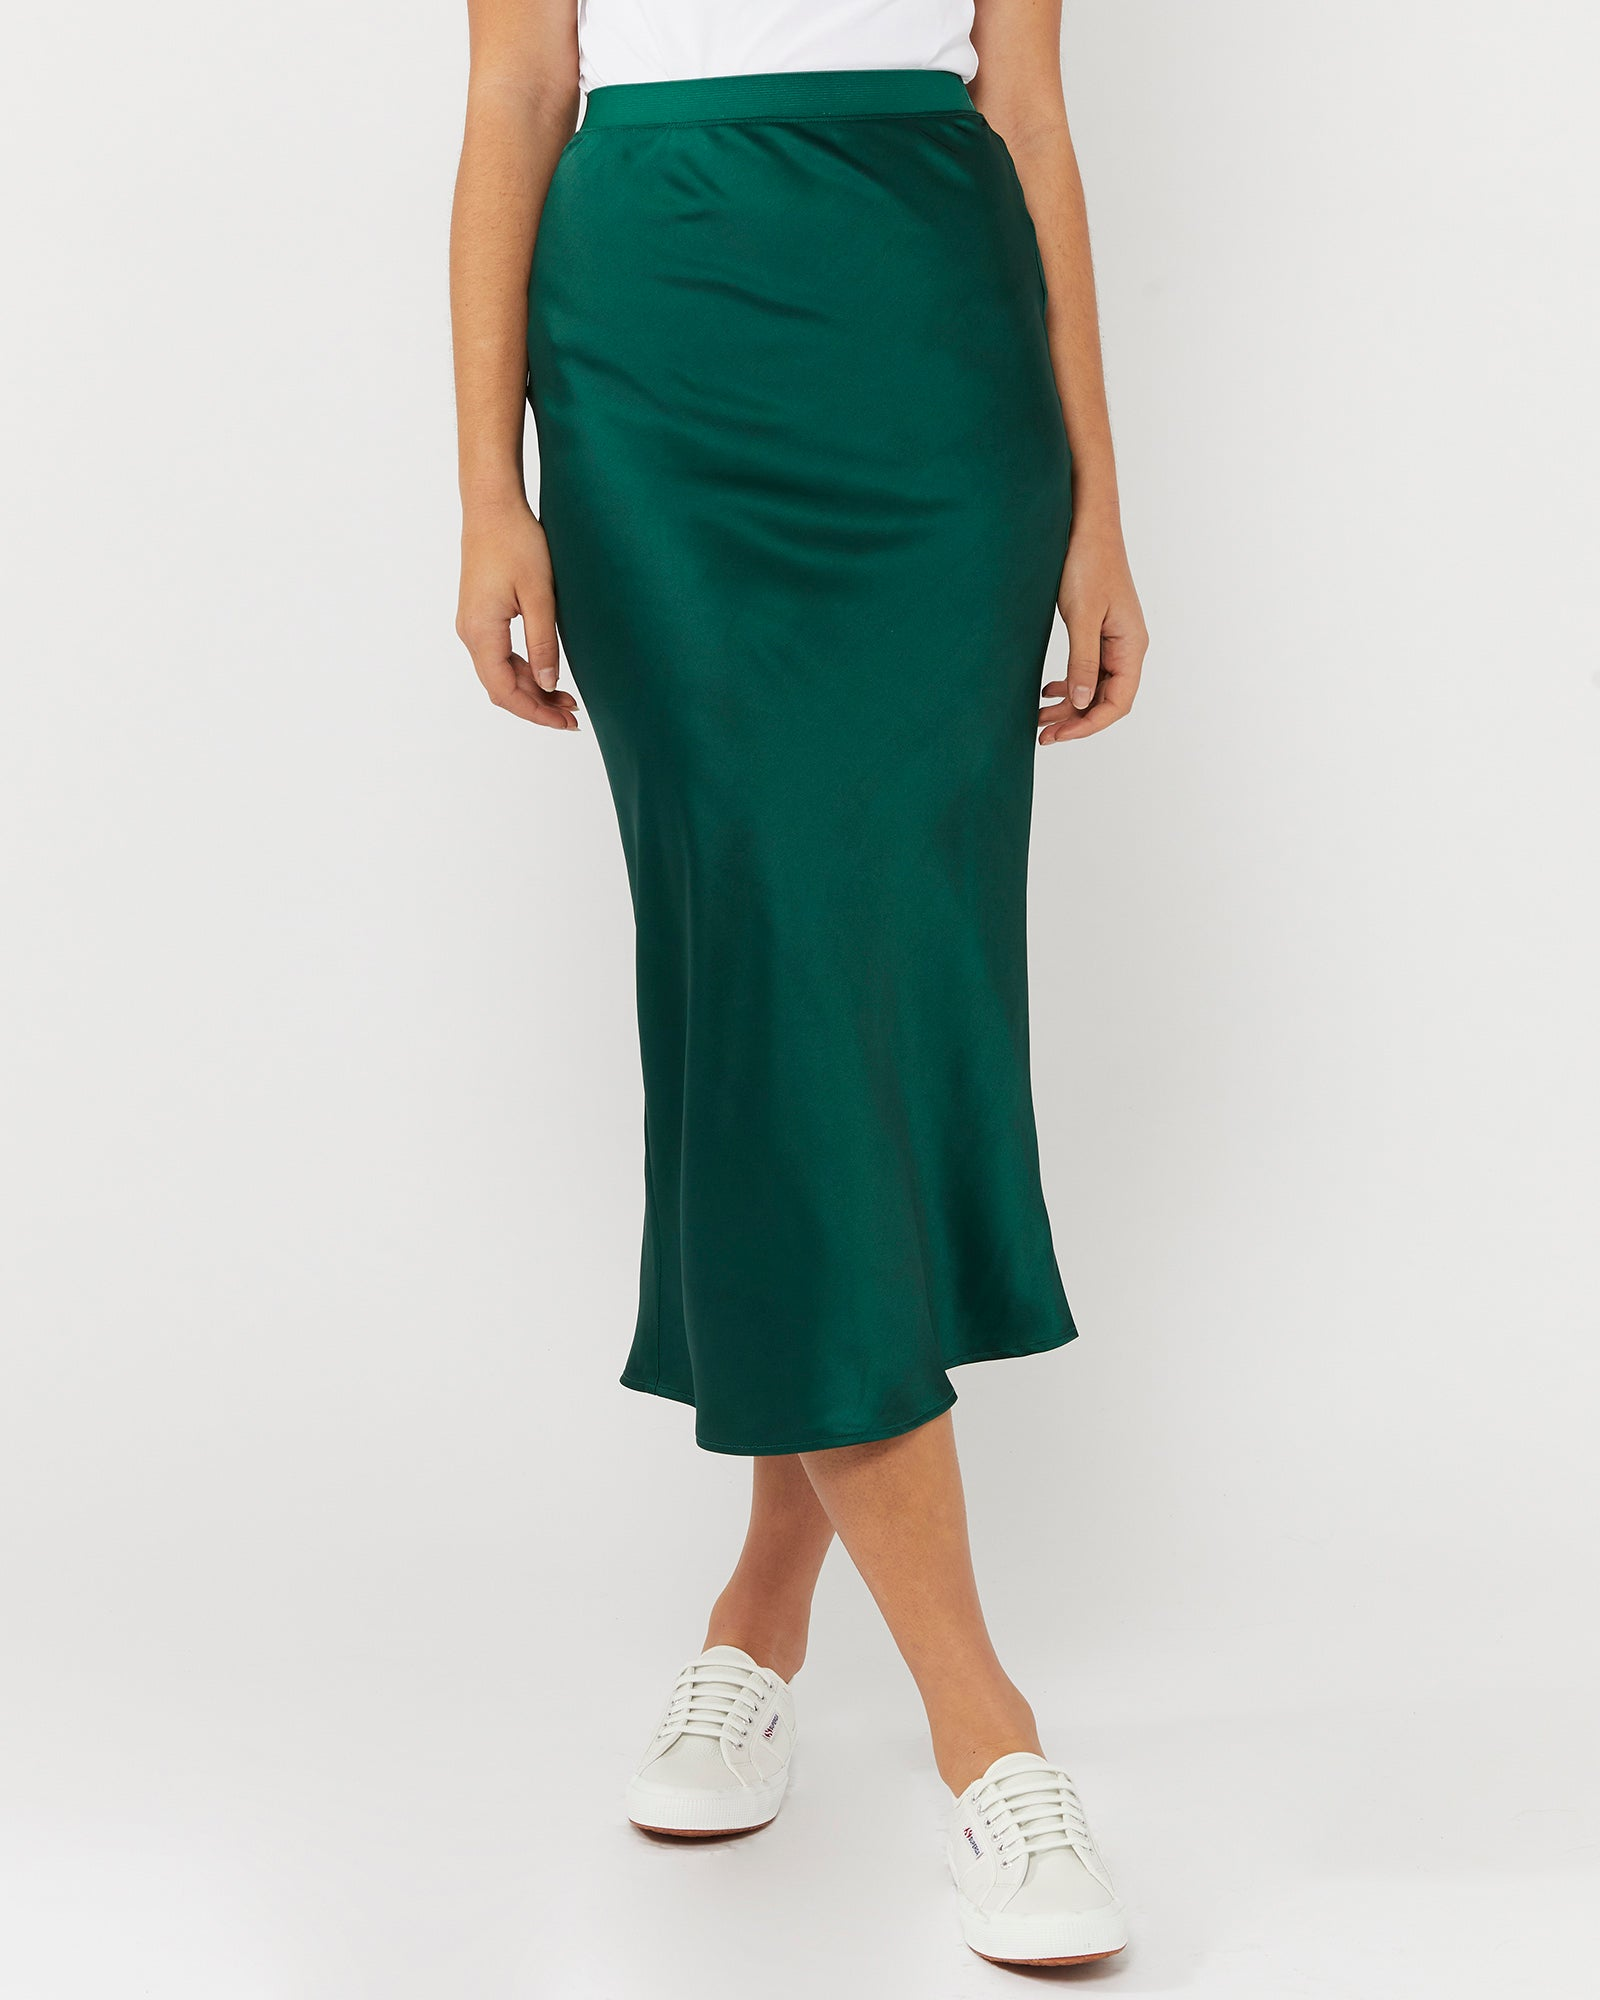 ALL THESE YEARS SATIN SKIRT - FOREST GREEN